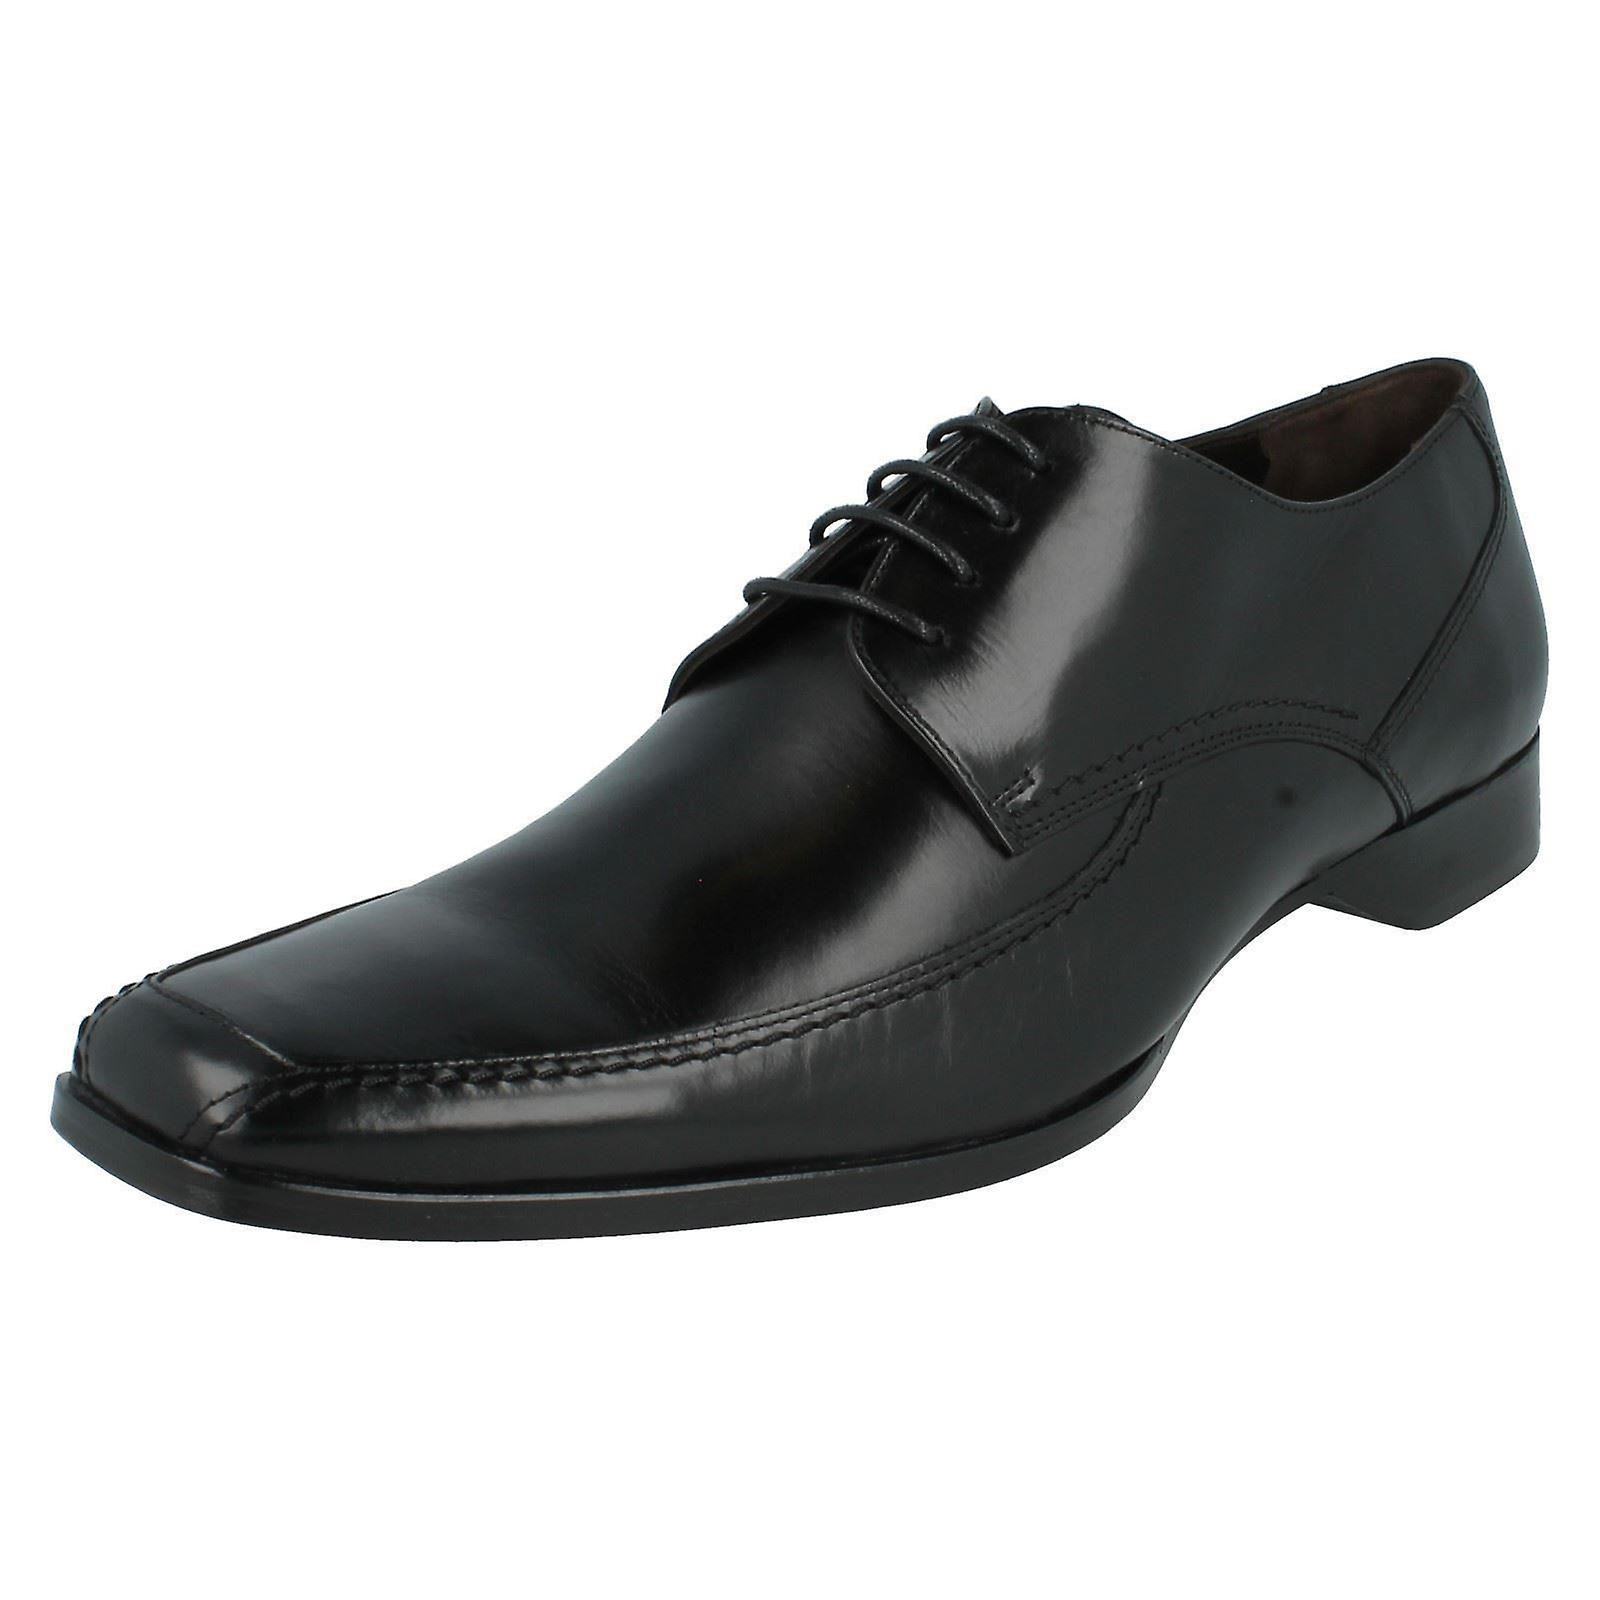 Mens Loake Leather Leather Leather Formal Shoes 1369B - Black Leather - UK Size 9.5F - EU Size 44 - US Size 10 05111c